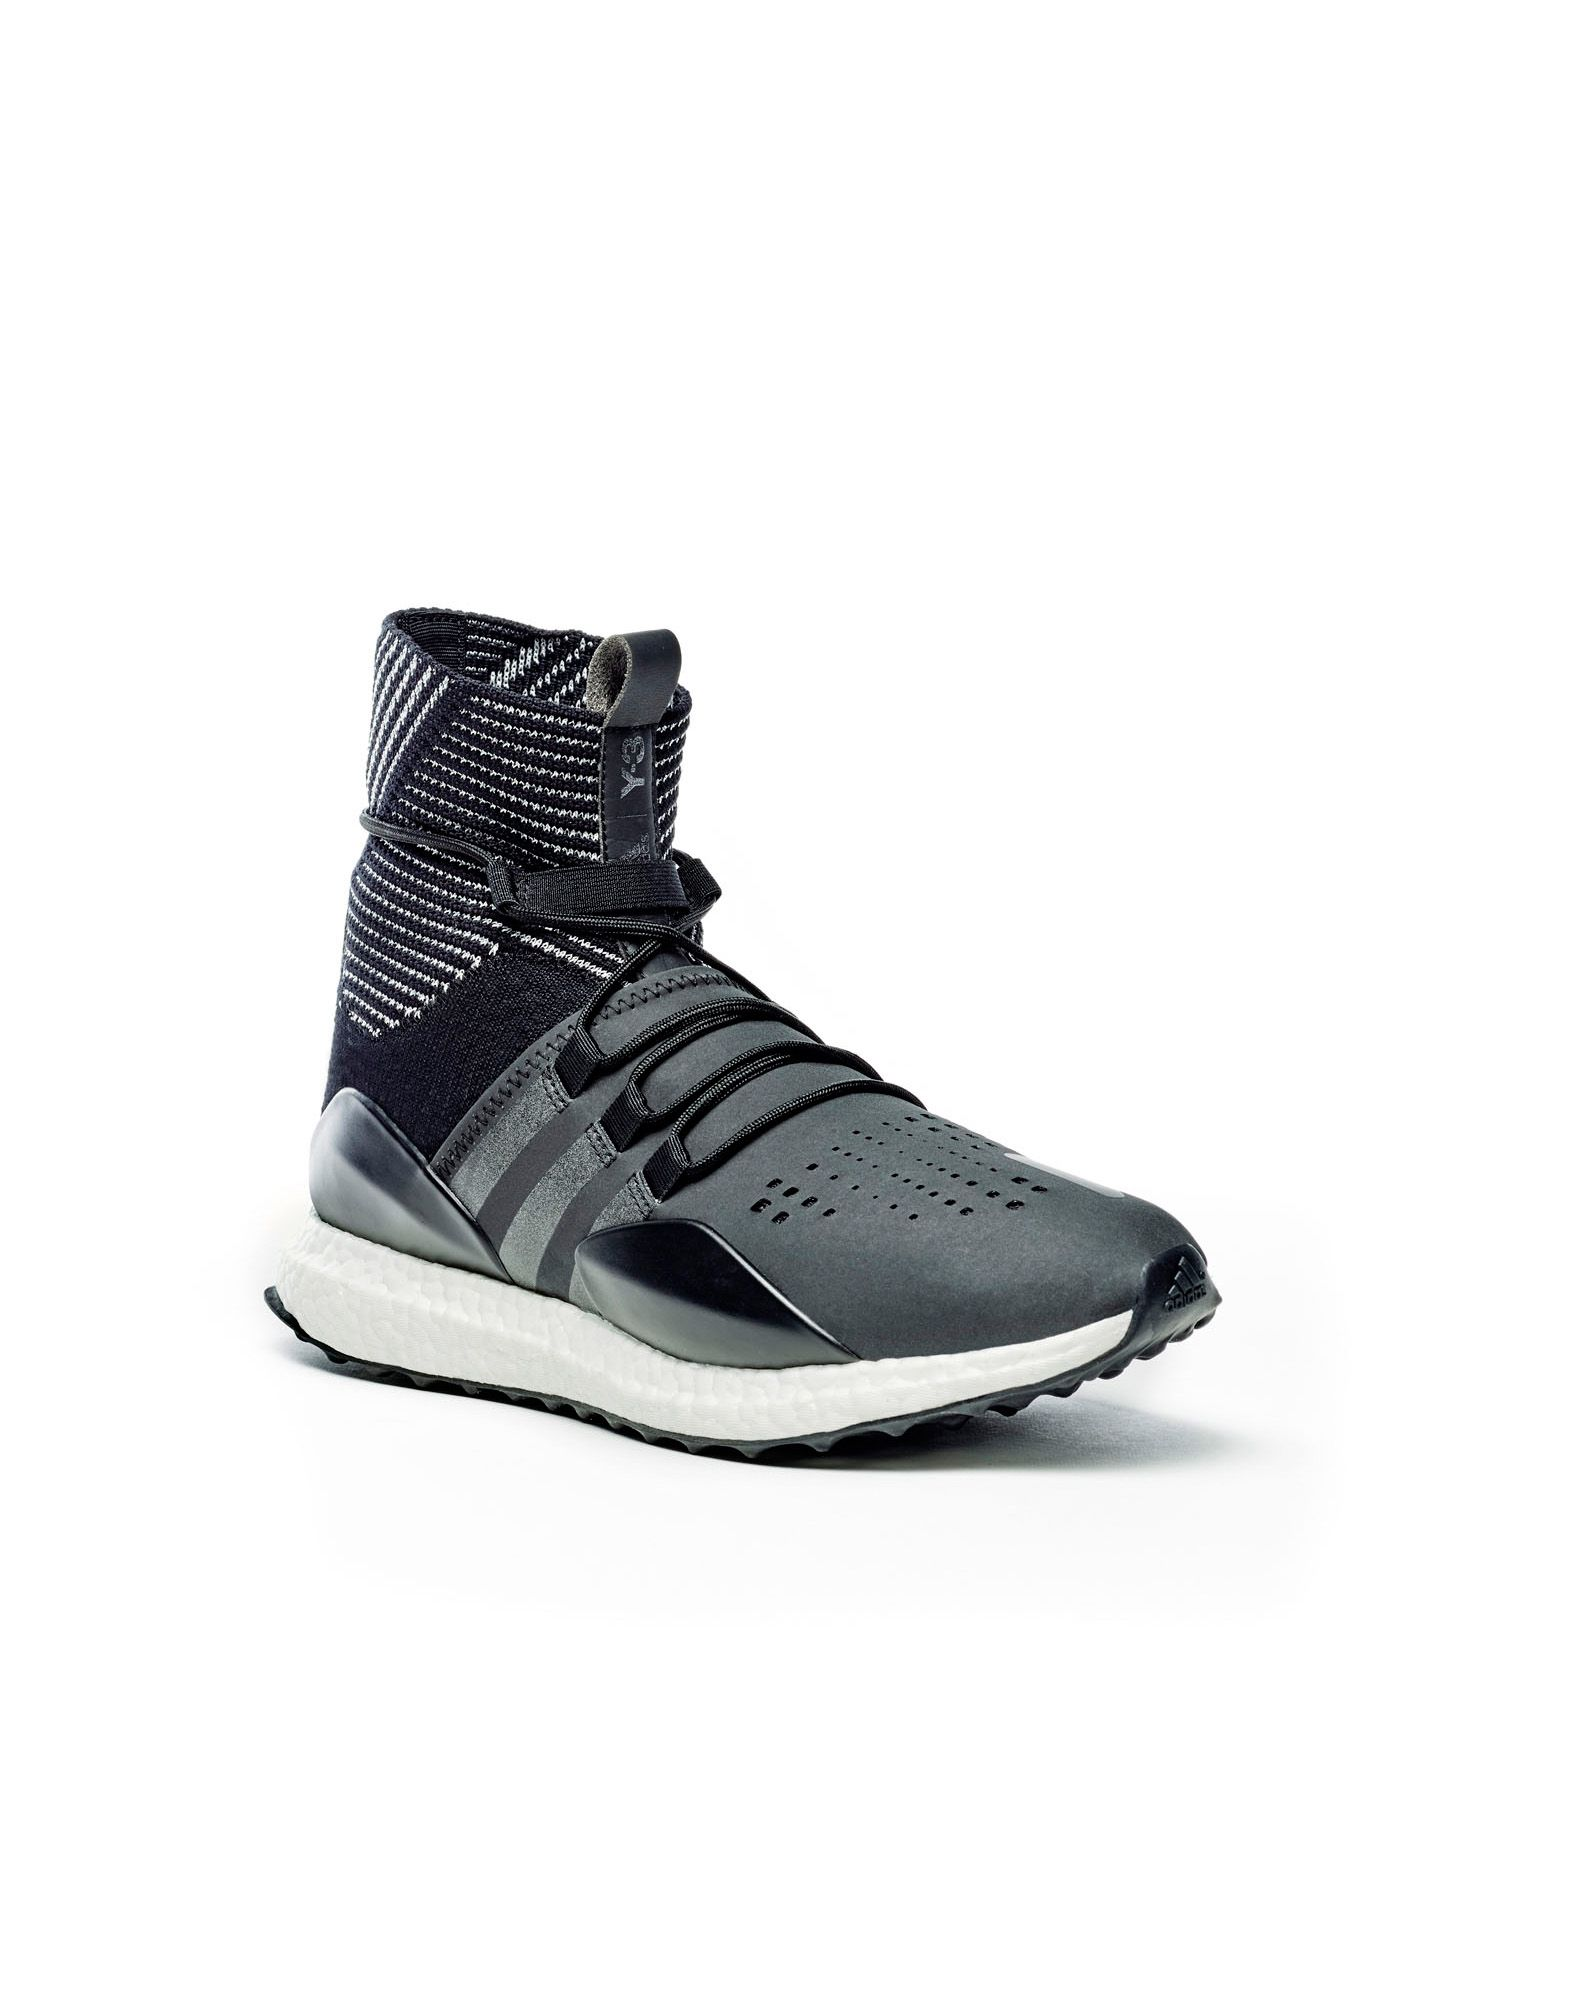 Y-3 Approach Reflect High-Top Sneakers jTf0gdjX